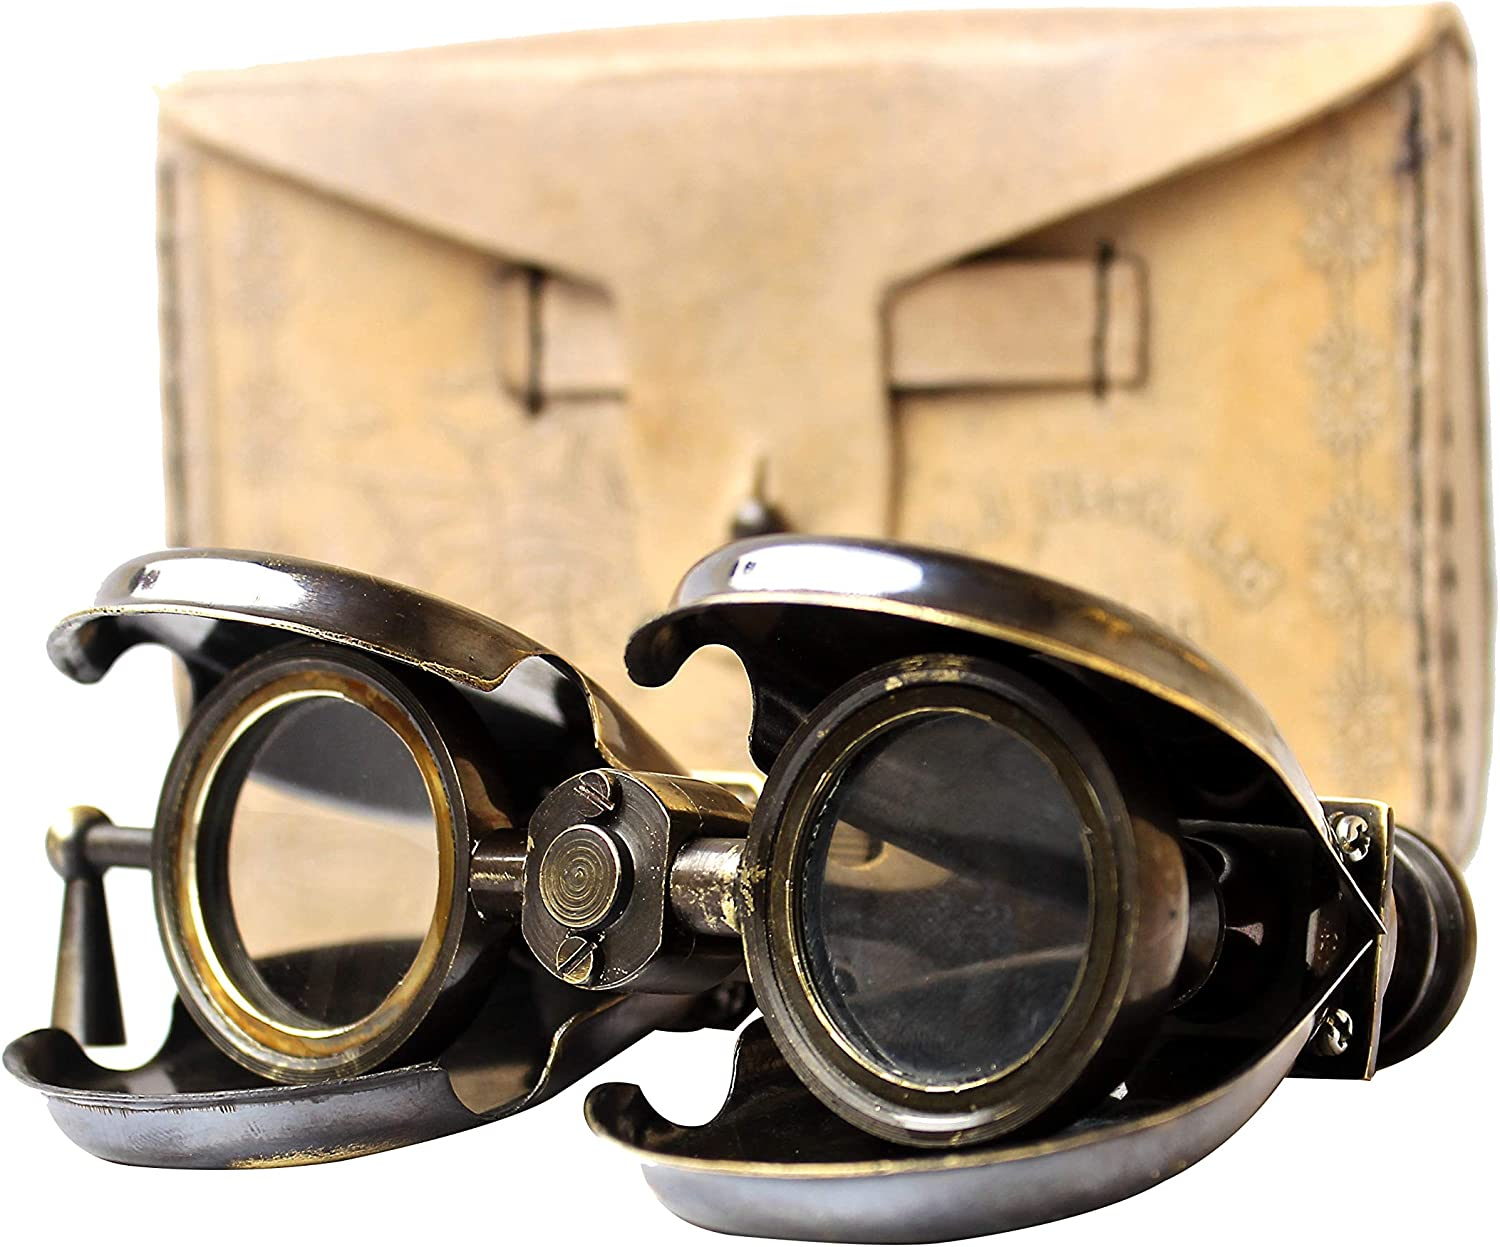 Vintage Antique Spy Glass 1857 R & J Beck Brass Binocular with Leather Case